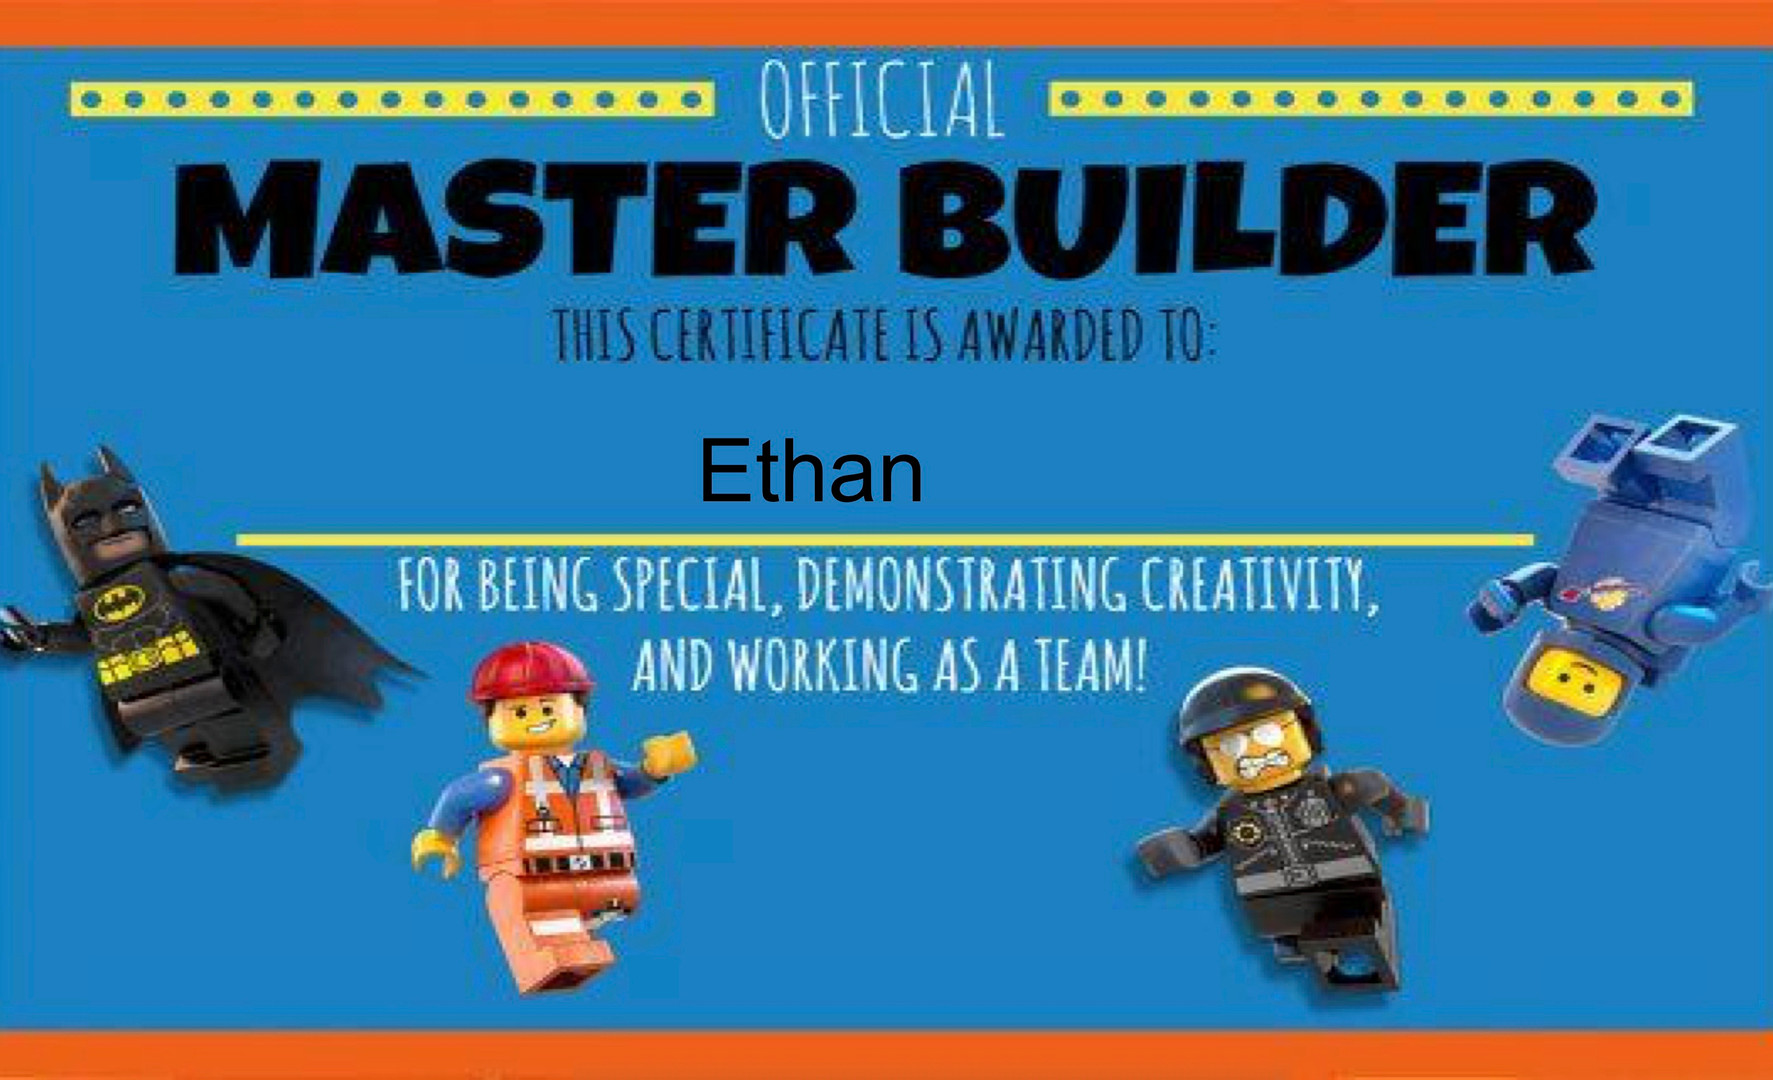 Lego Challenges - Ethan's Master Builder Certificate